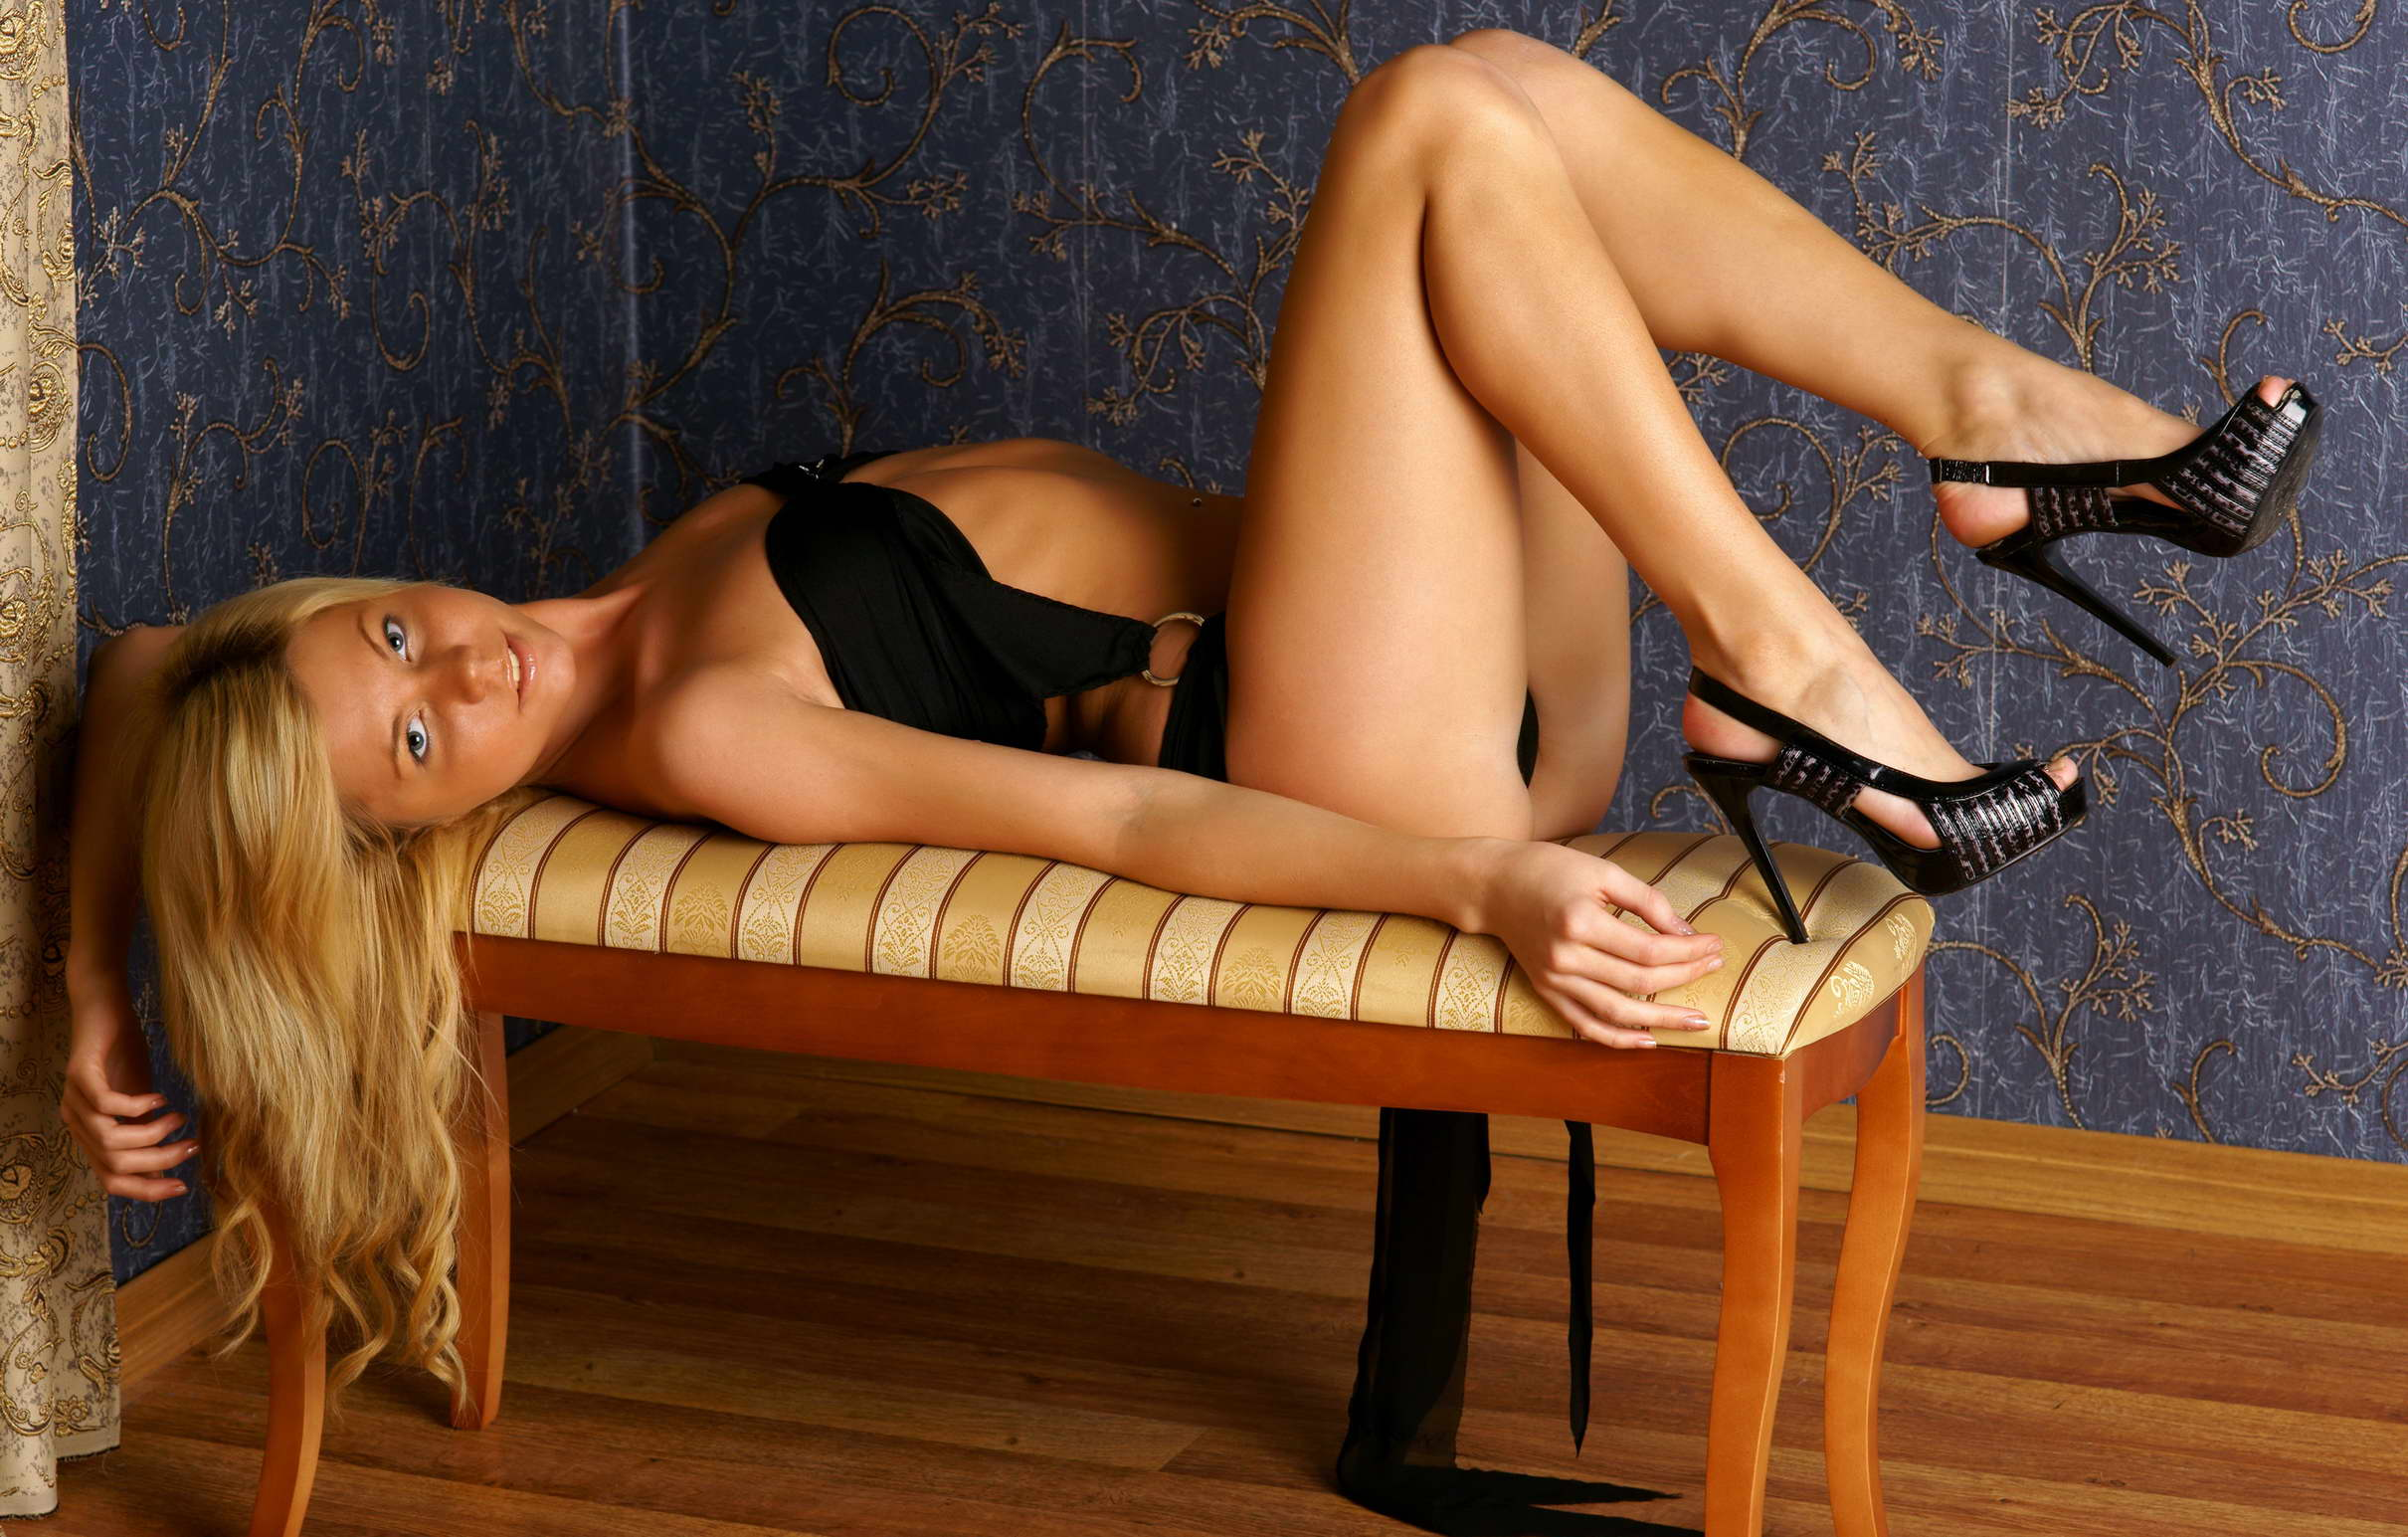 London escorts - young blonde